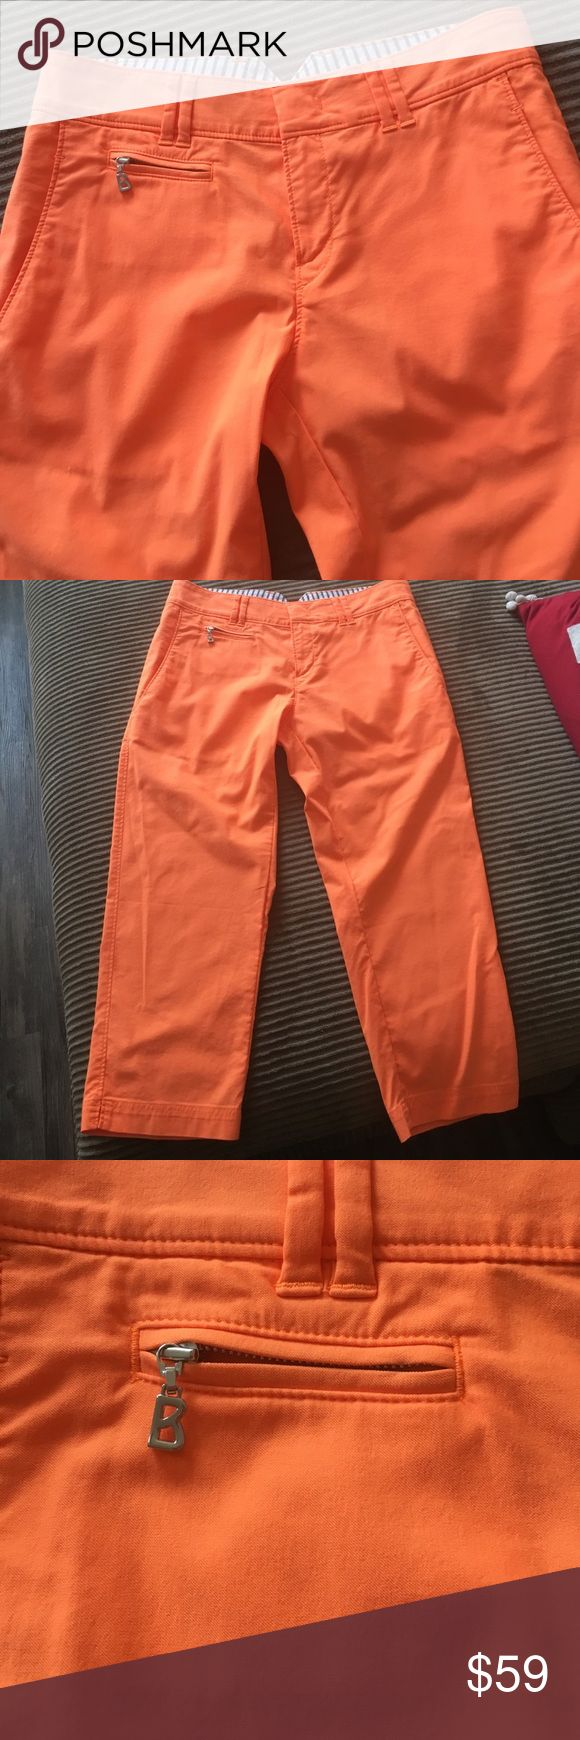 Golf Bogner NWT trousers/golf pants BOGNER!!! A top brand in sportswear with no question!!! These orange pants are new with tags $319 a great find! U ladies who golf no these well. Wear for sports or leisure this color orange is fabulous shade and stands out in sports wear without a doubt! These pants are ridiculously discounted so please don't offer me less. Bogner Pants Capris